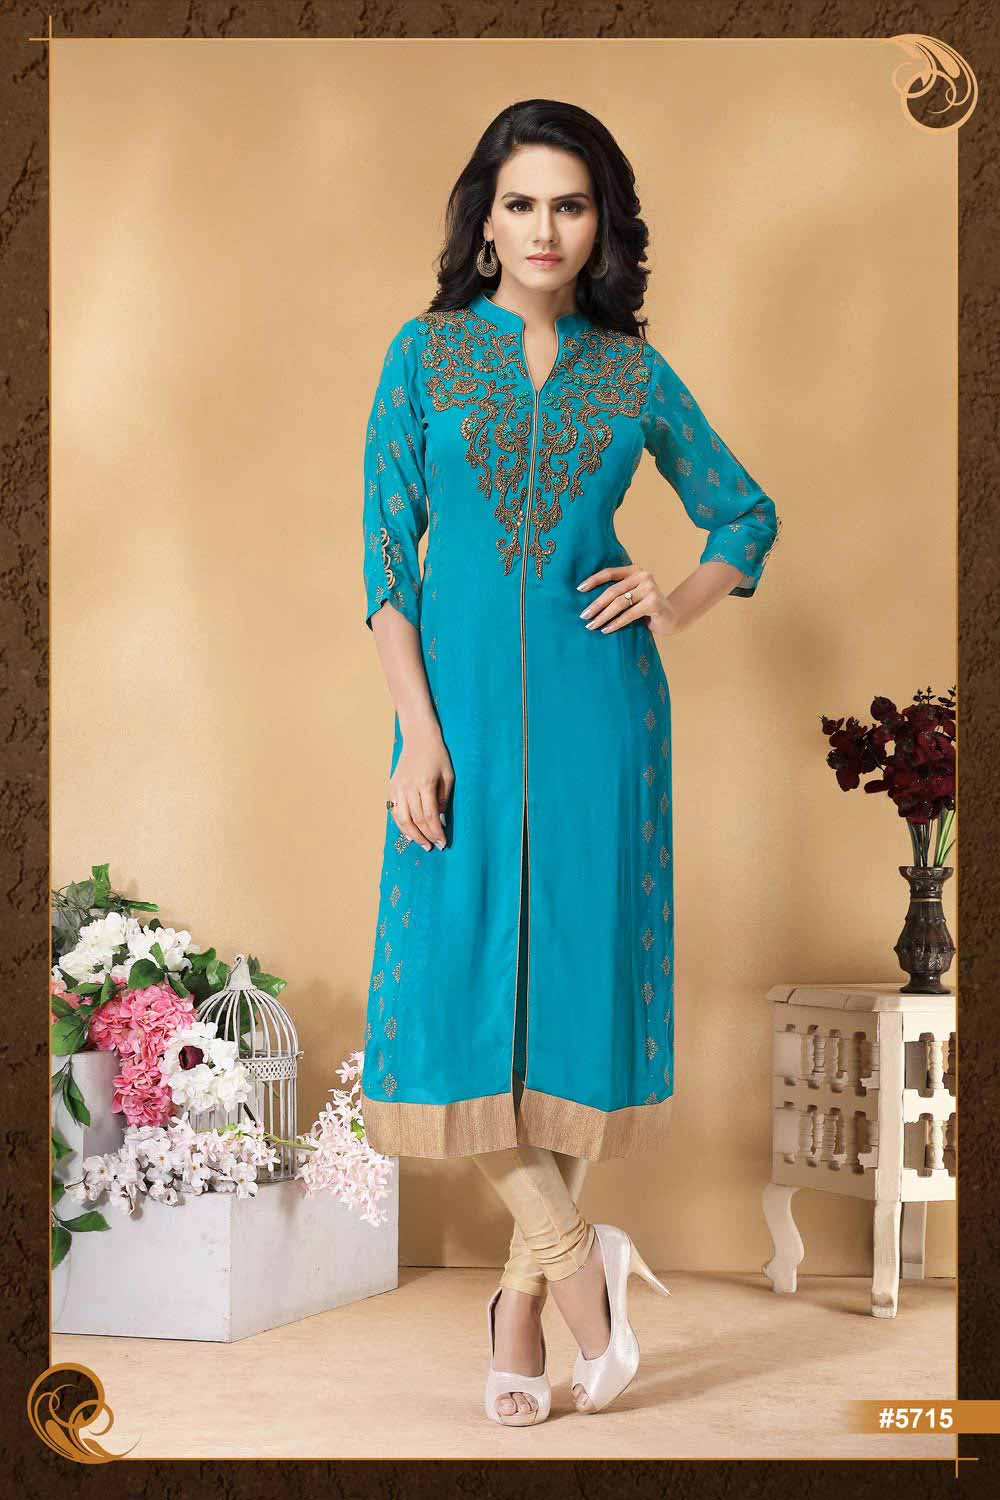 Kurti with beautiful hand embroidery at the yoke.